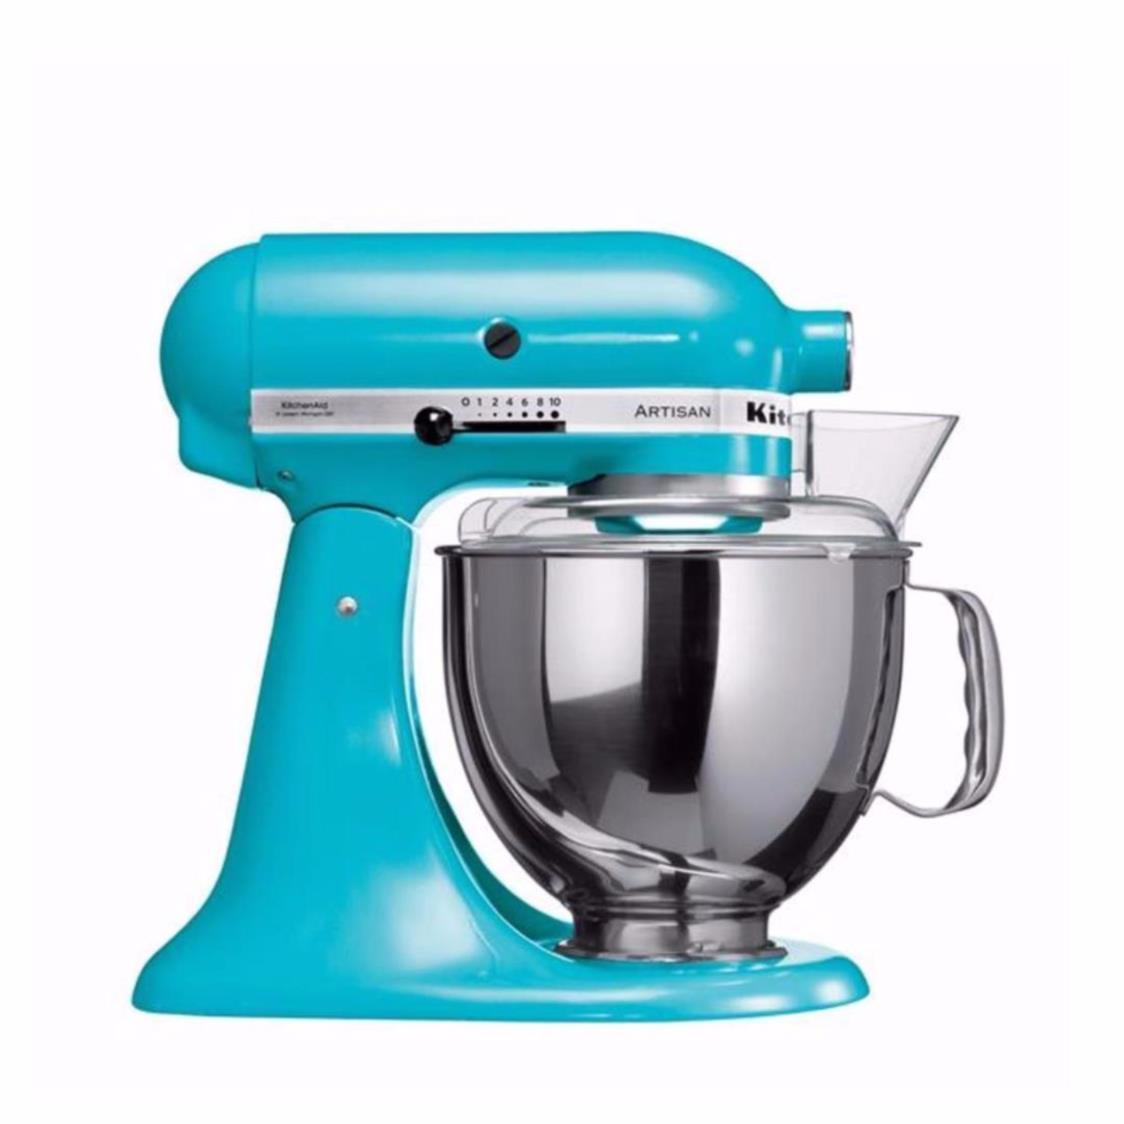 KitchenAid Artisan Series Tilt-Head Stand Mixer 5KSM150PSBCL